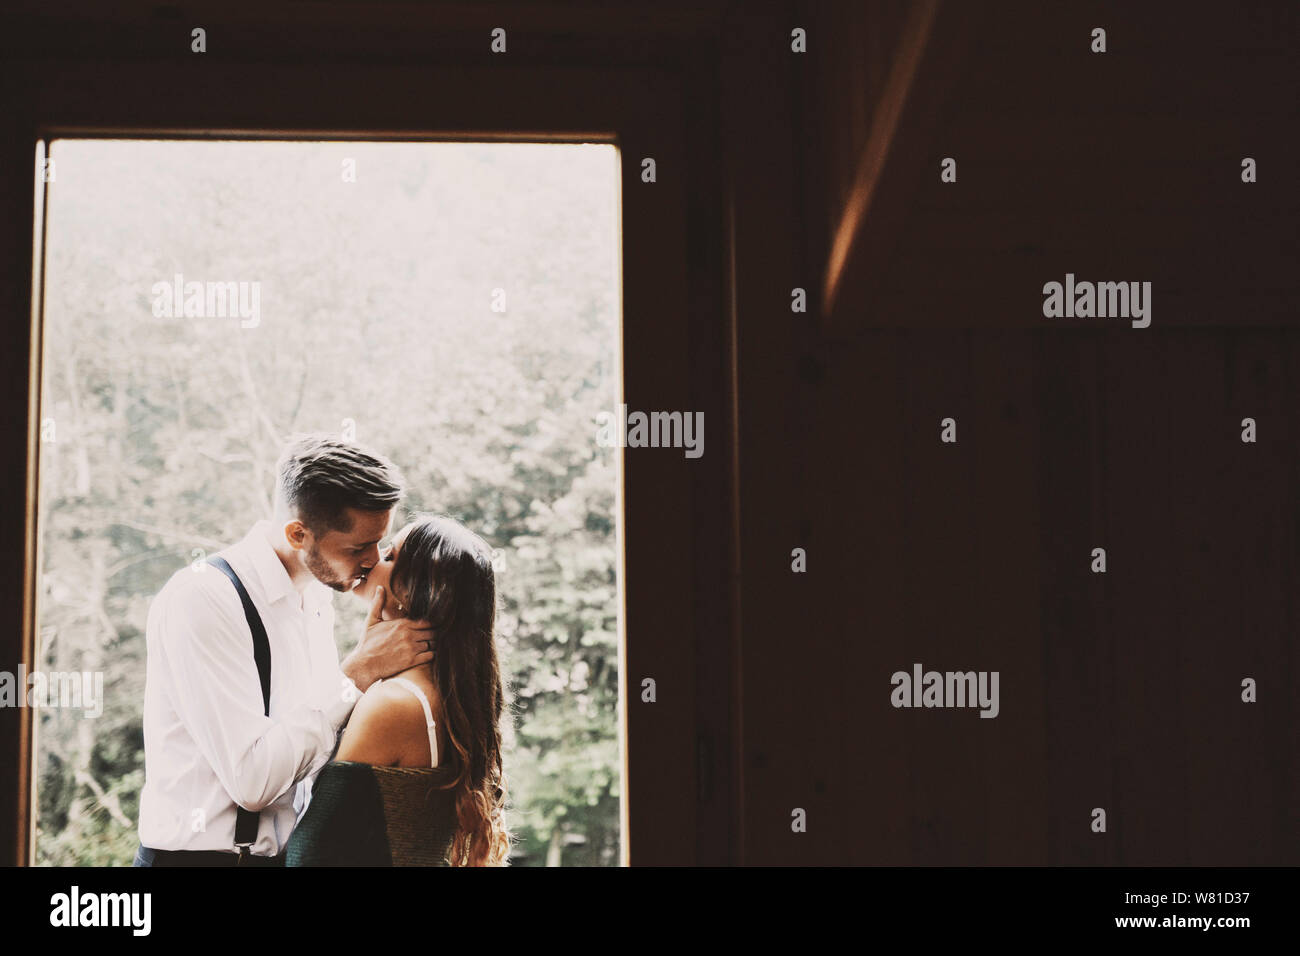 Side View Portrait Of A Lovey Young Married Couple Kissing On The